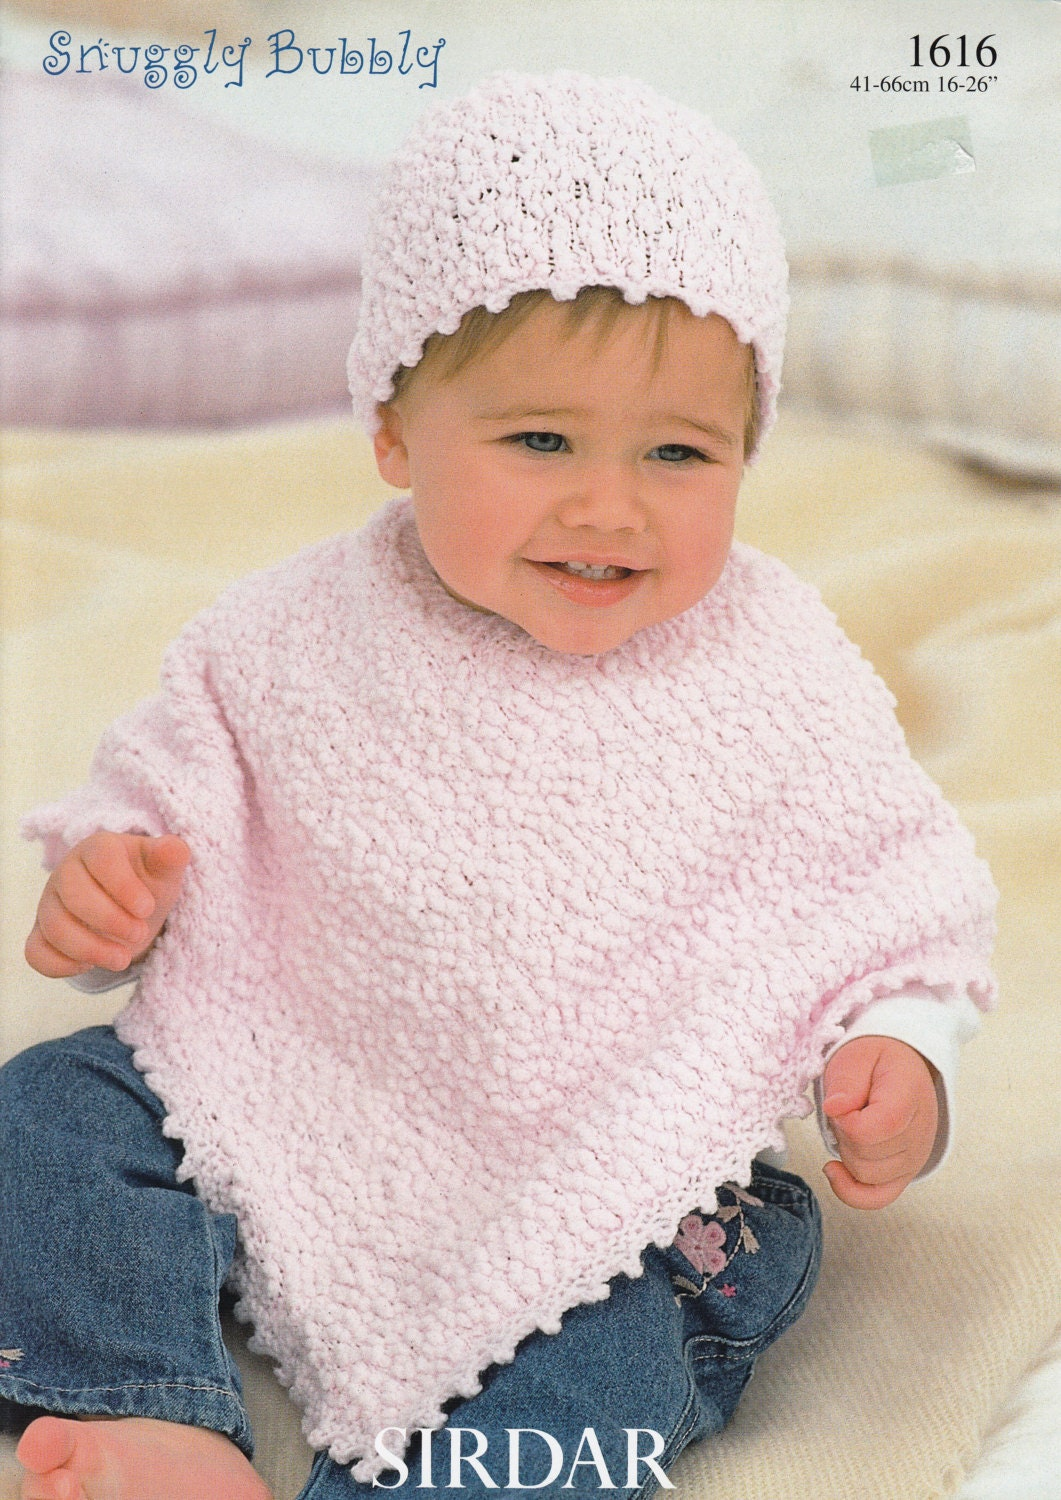 Knitting Pattern For Toddler Poncho : Baby Poncho Knitting Pattern Sirdar Snuggly Bubbly 1616